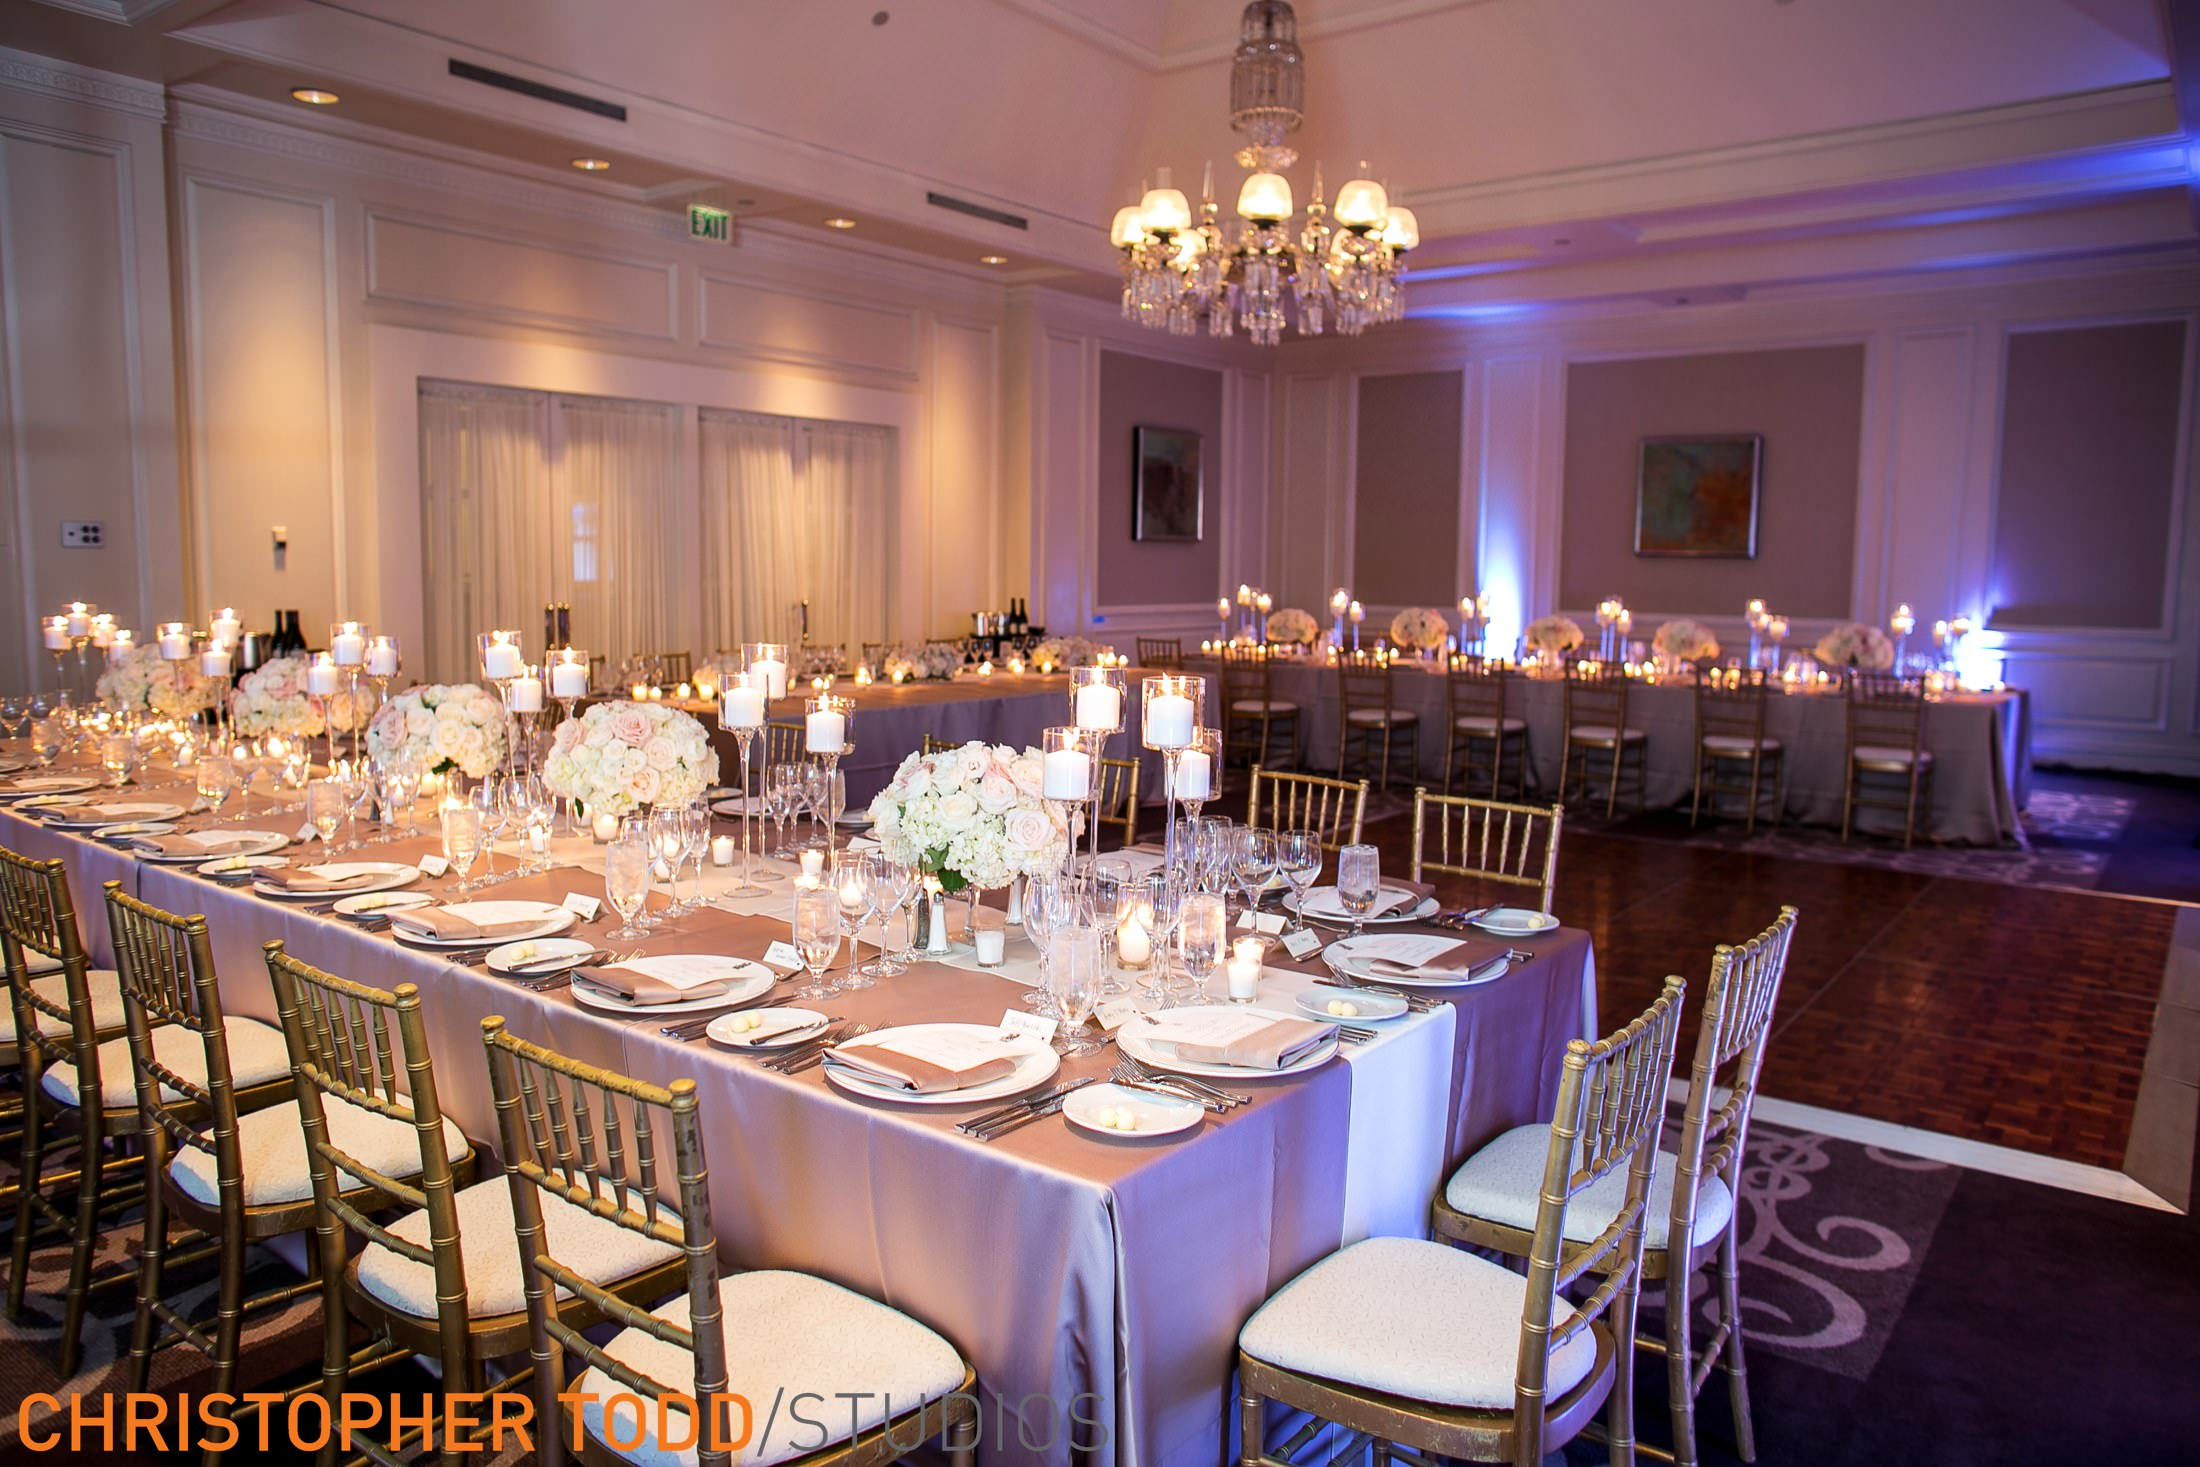 reception with long tables and white cushion chairs with gold backing at ritz laguna niguel.